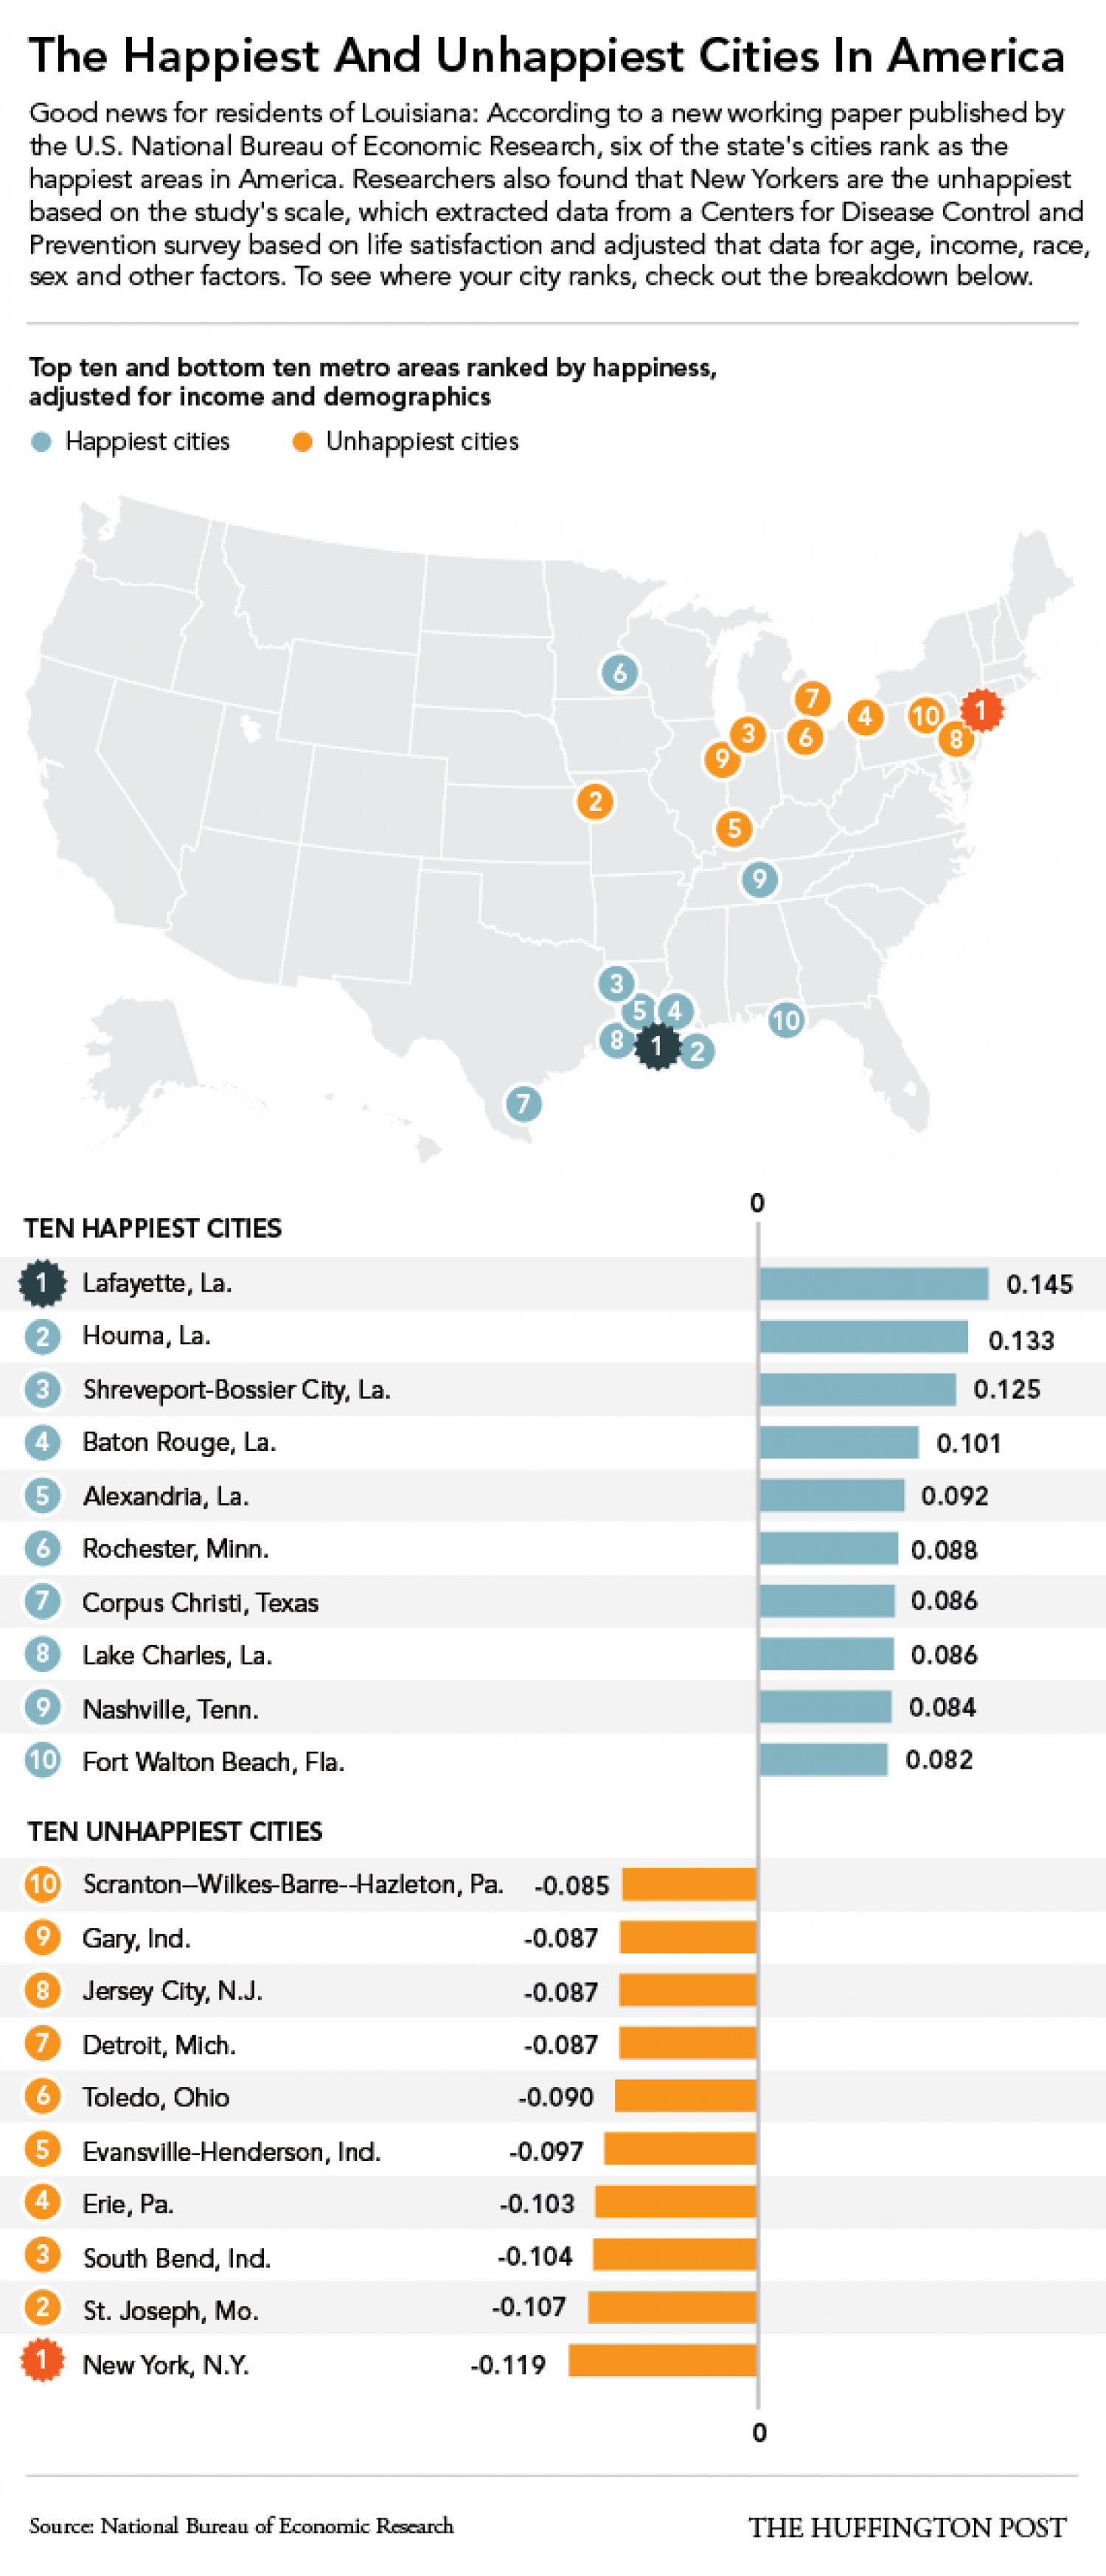 The Happiest And Unhappiest Cities in America Infographic